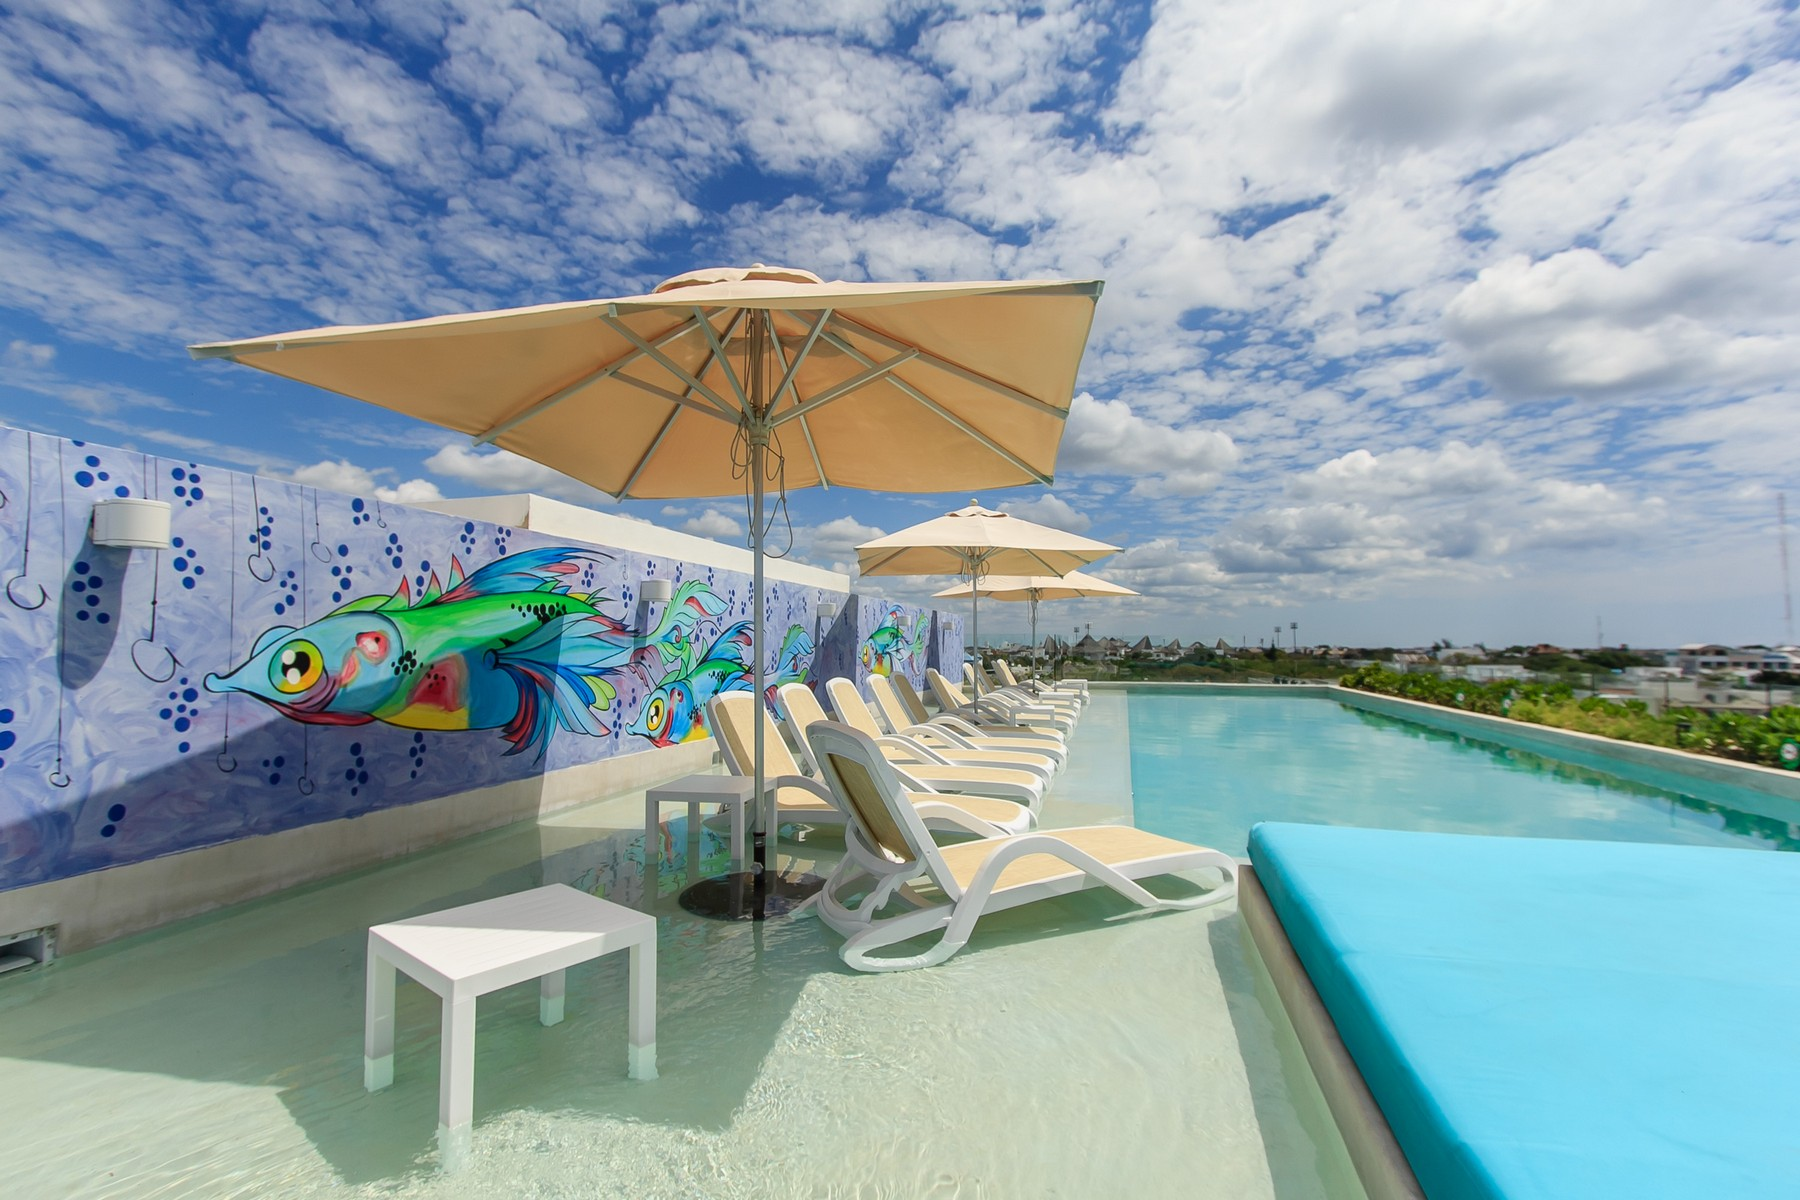 Apartment for Sale at CHARMING ONE BEDROOM CONDO IN DOWNTOWN Charming one bedroom condo in downtown Ave. 20 entre calle 14 bis y 16 Playa Del Carmen, Quintana Roo 77710 Mexico